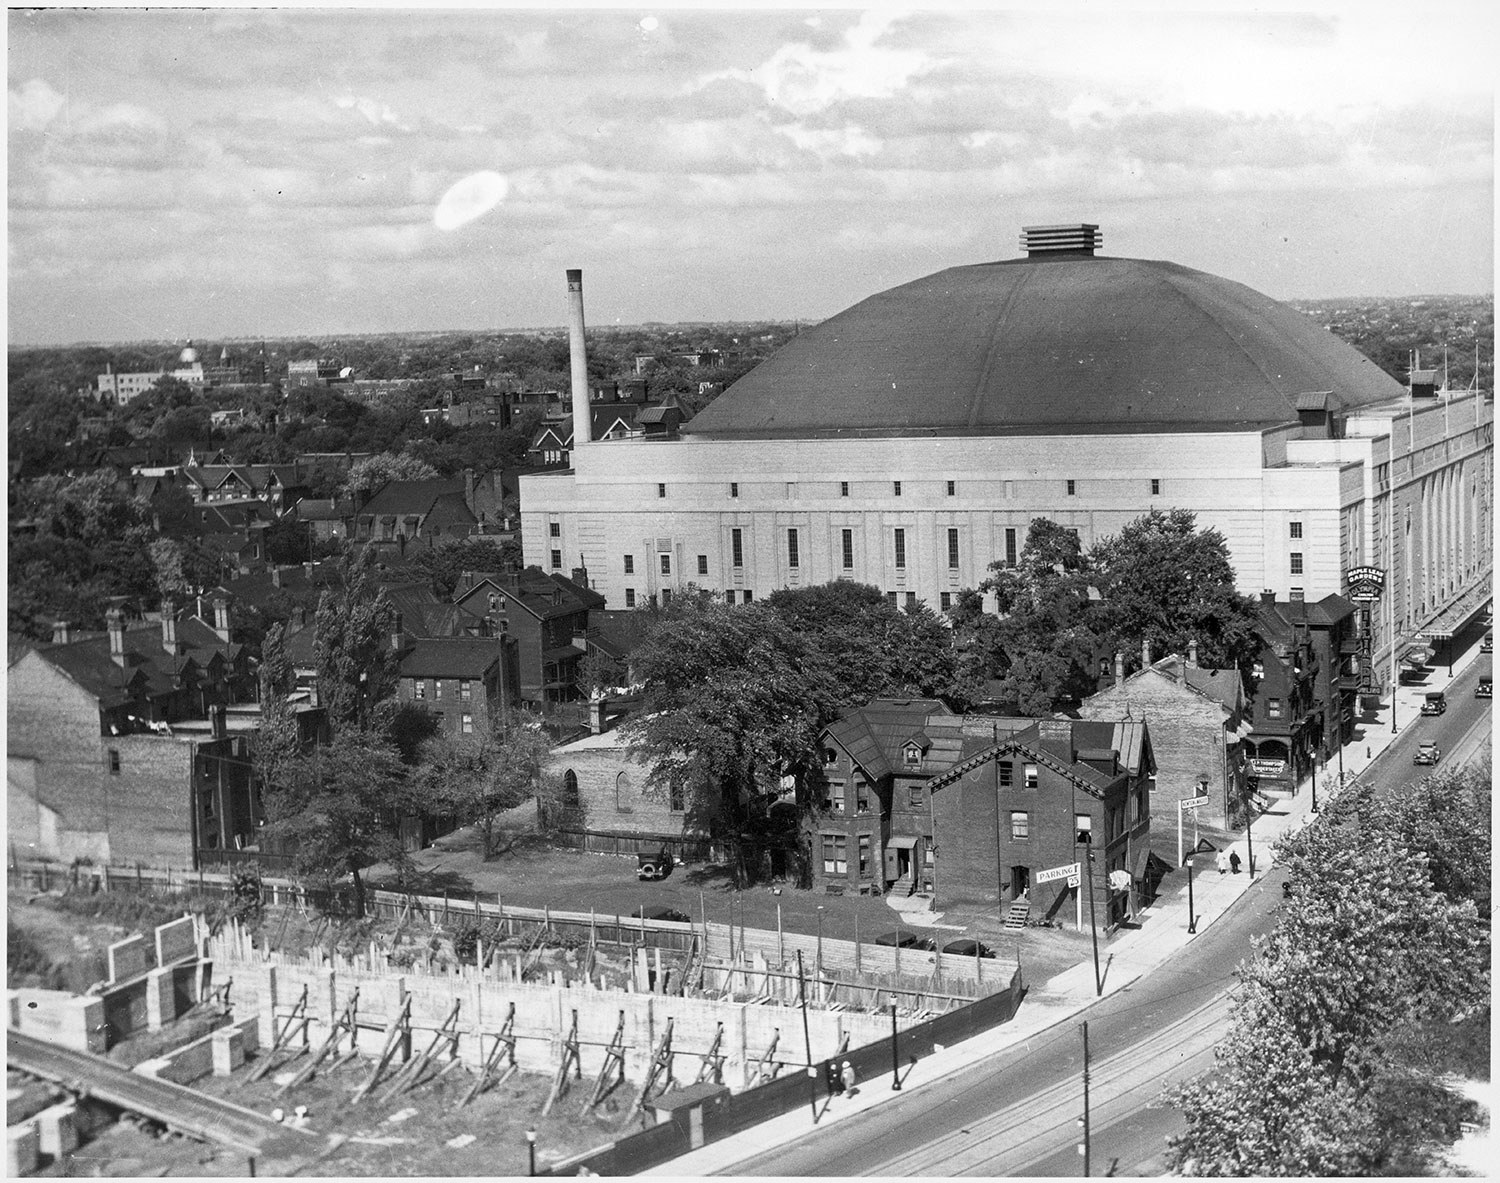 Maple Leaf Gardens, shown here, was designated a National Historic Site by the Government of Canada in 2007 – the only hockey arena in the country with this designation.